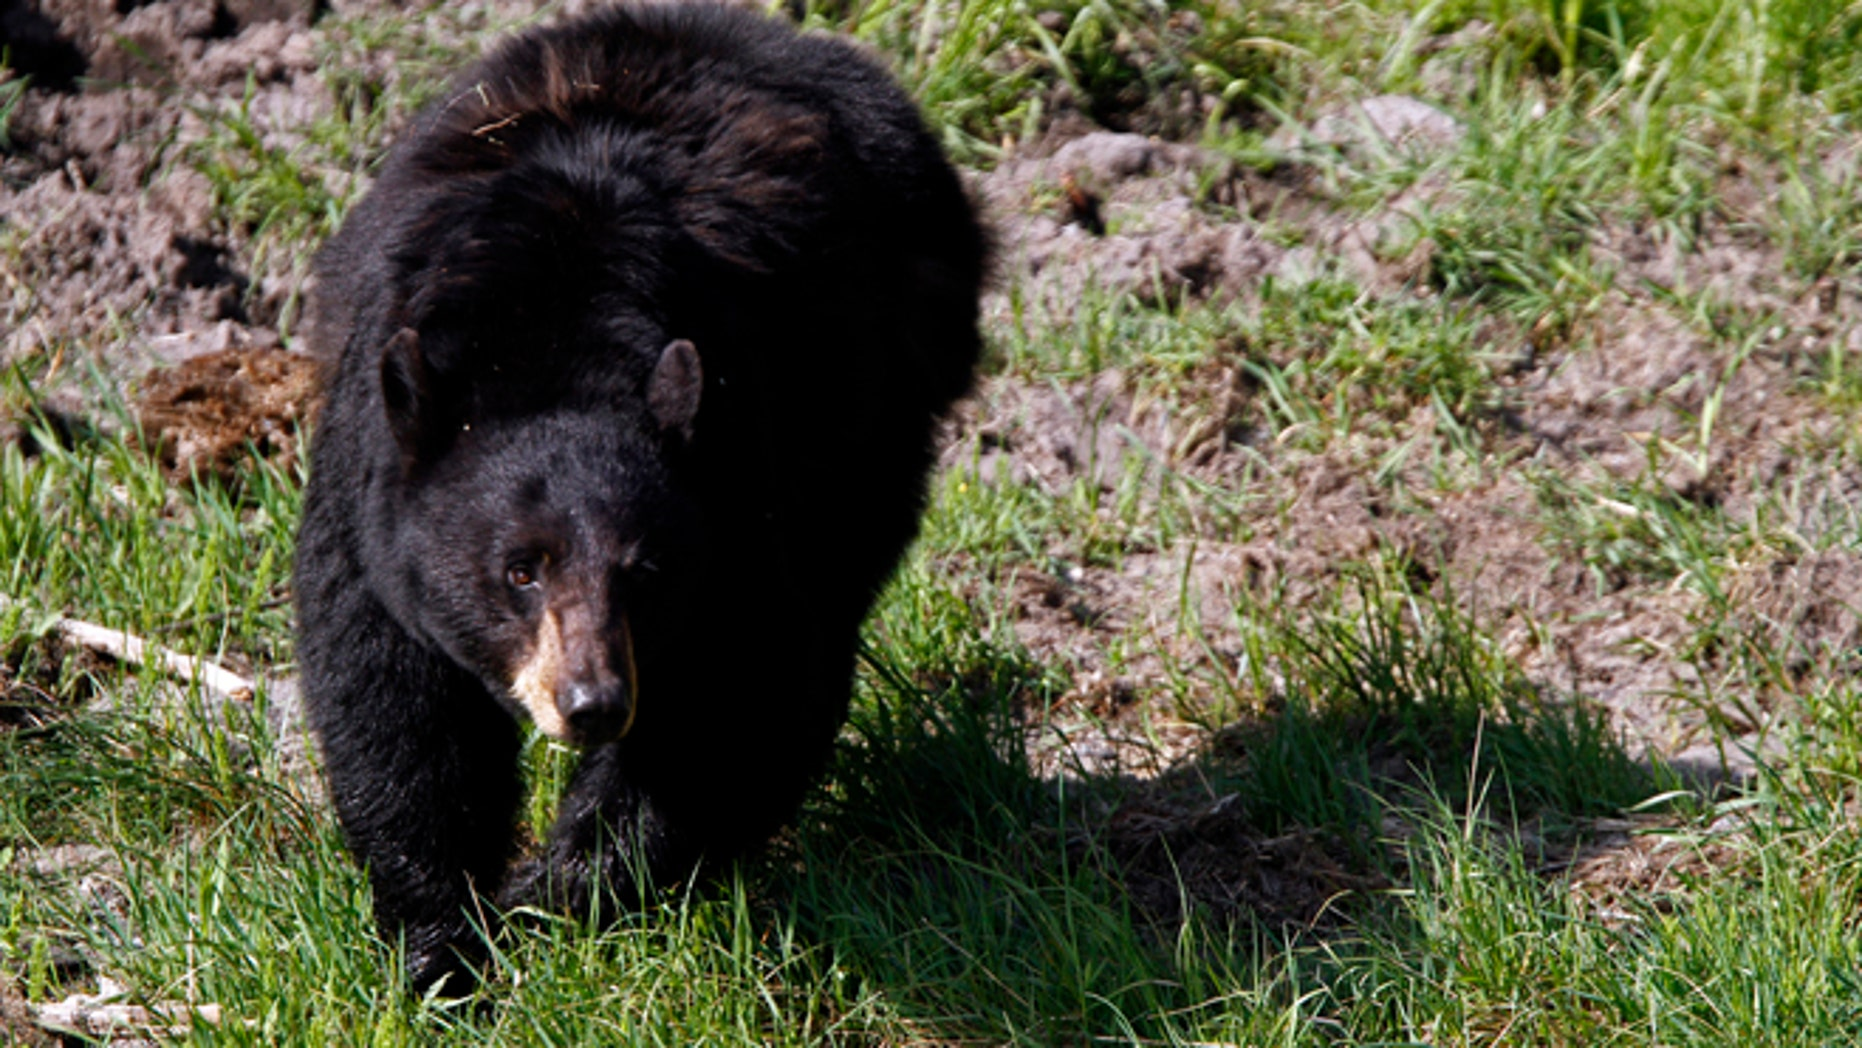 A black bear roams near the Lamar Valley in Yellowstone National Park, Wyoming.